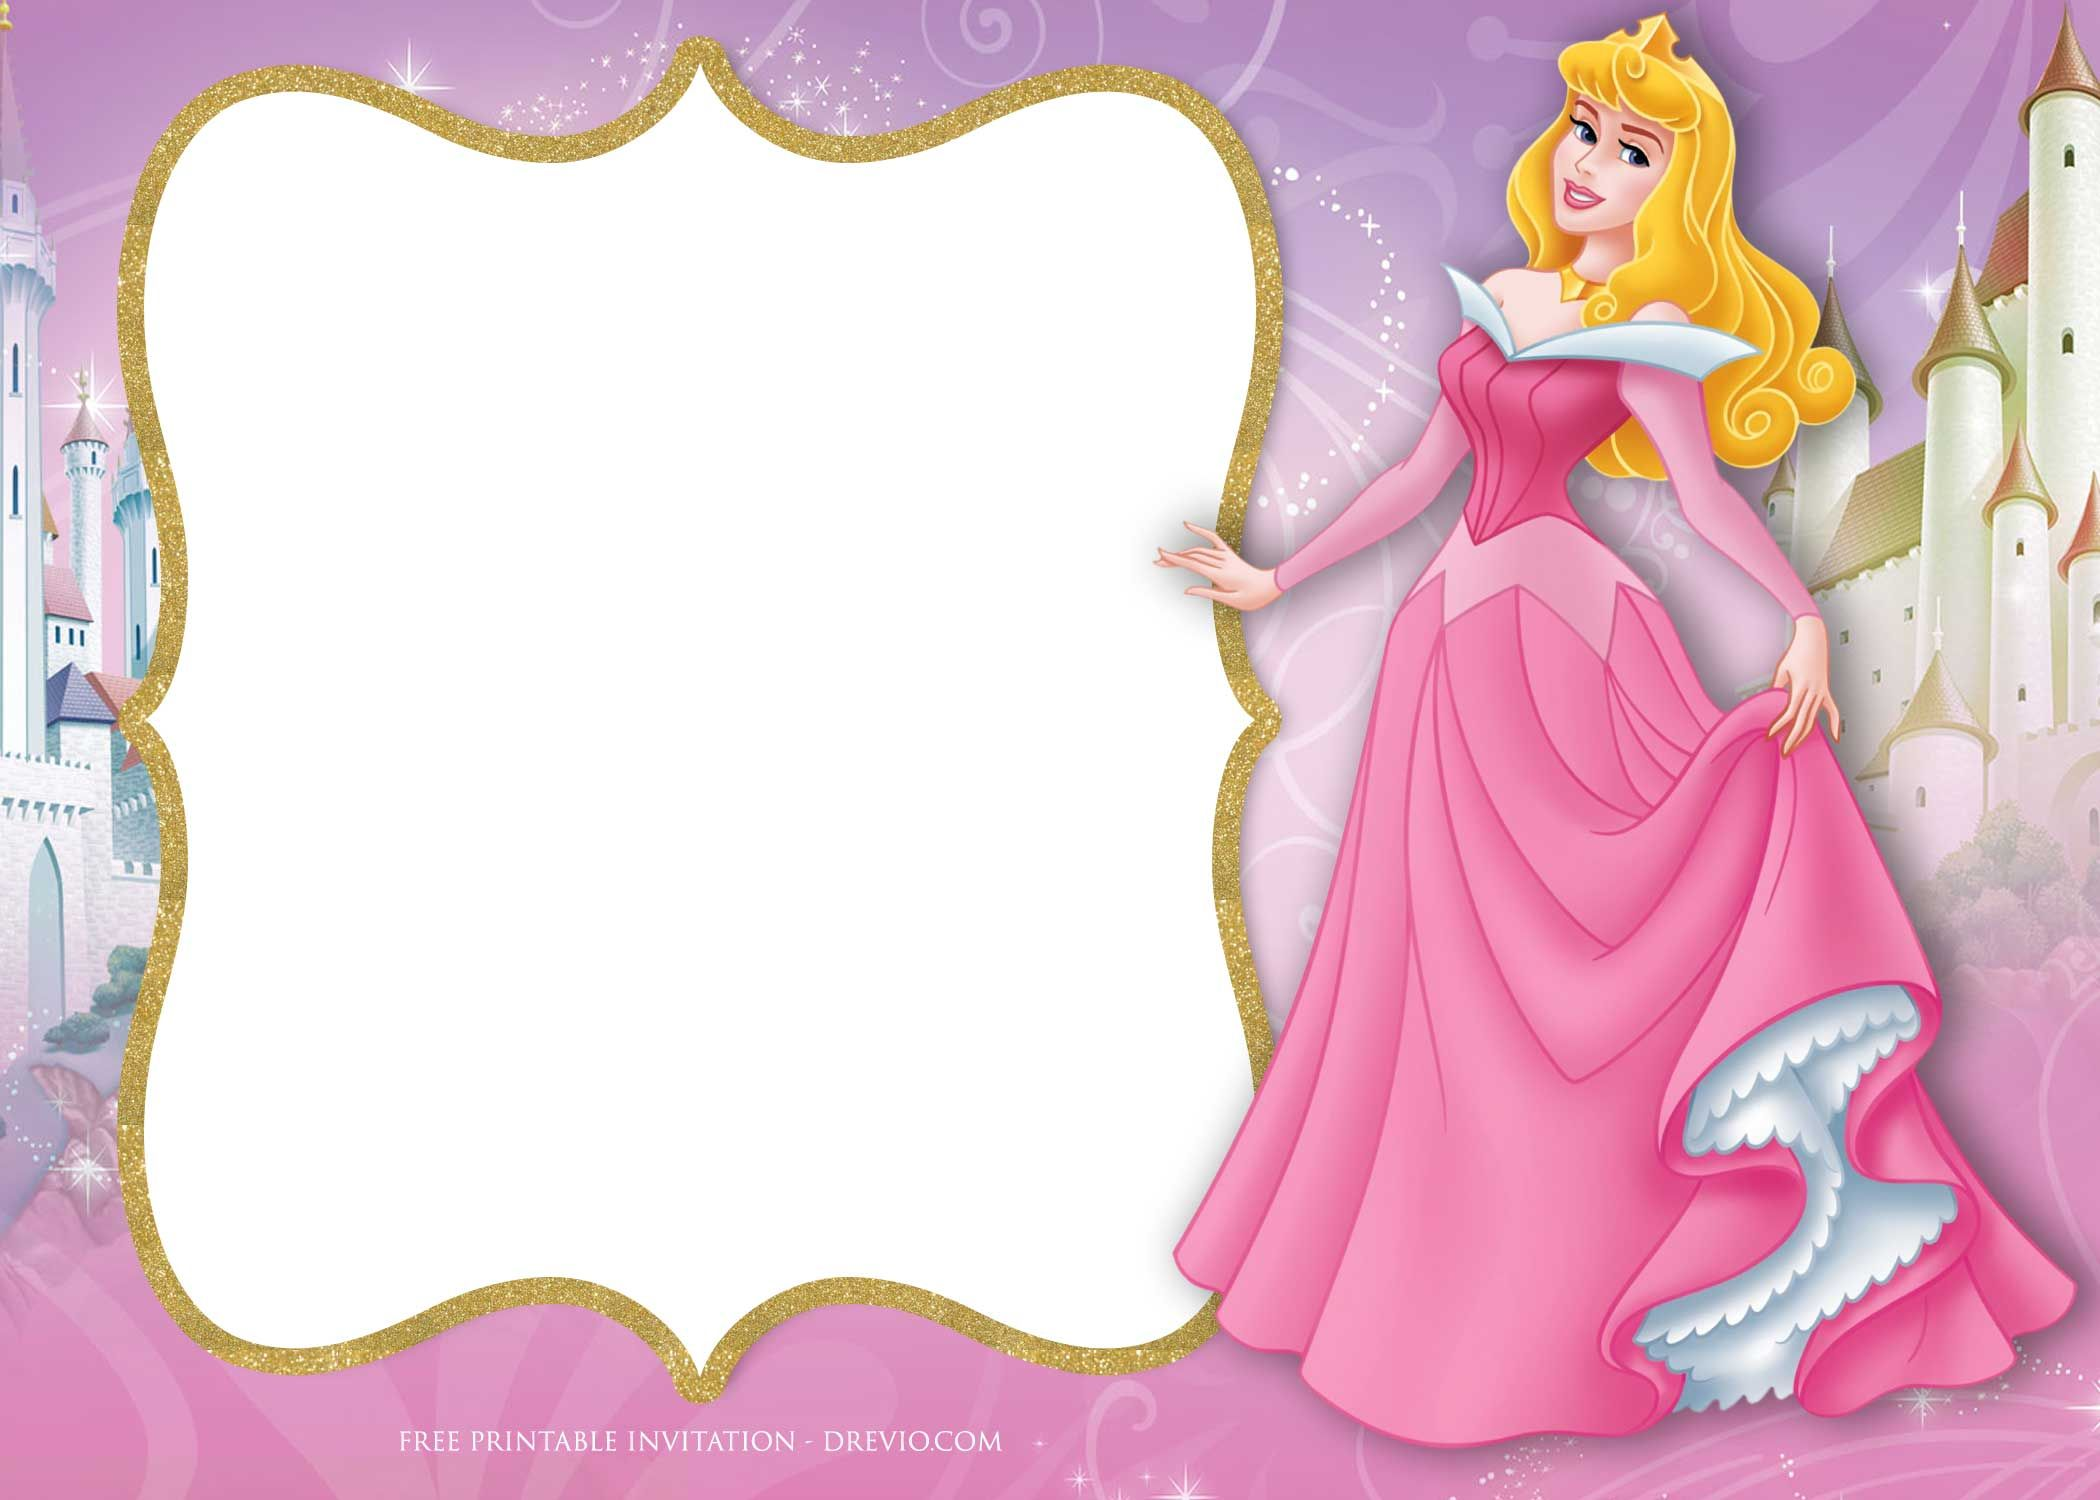 Download FREE Printable Princess Aurora Sleeping Beauty Invitation Templates